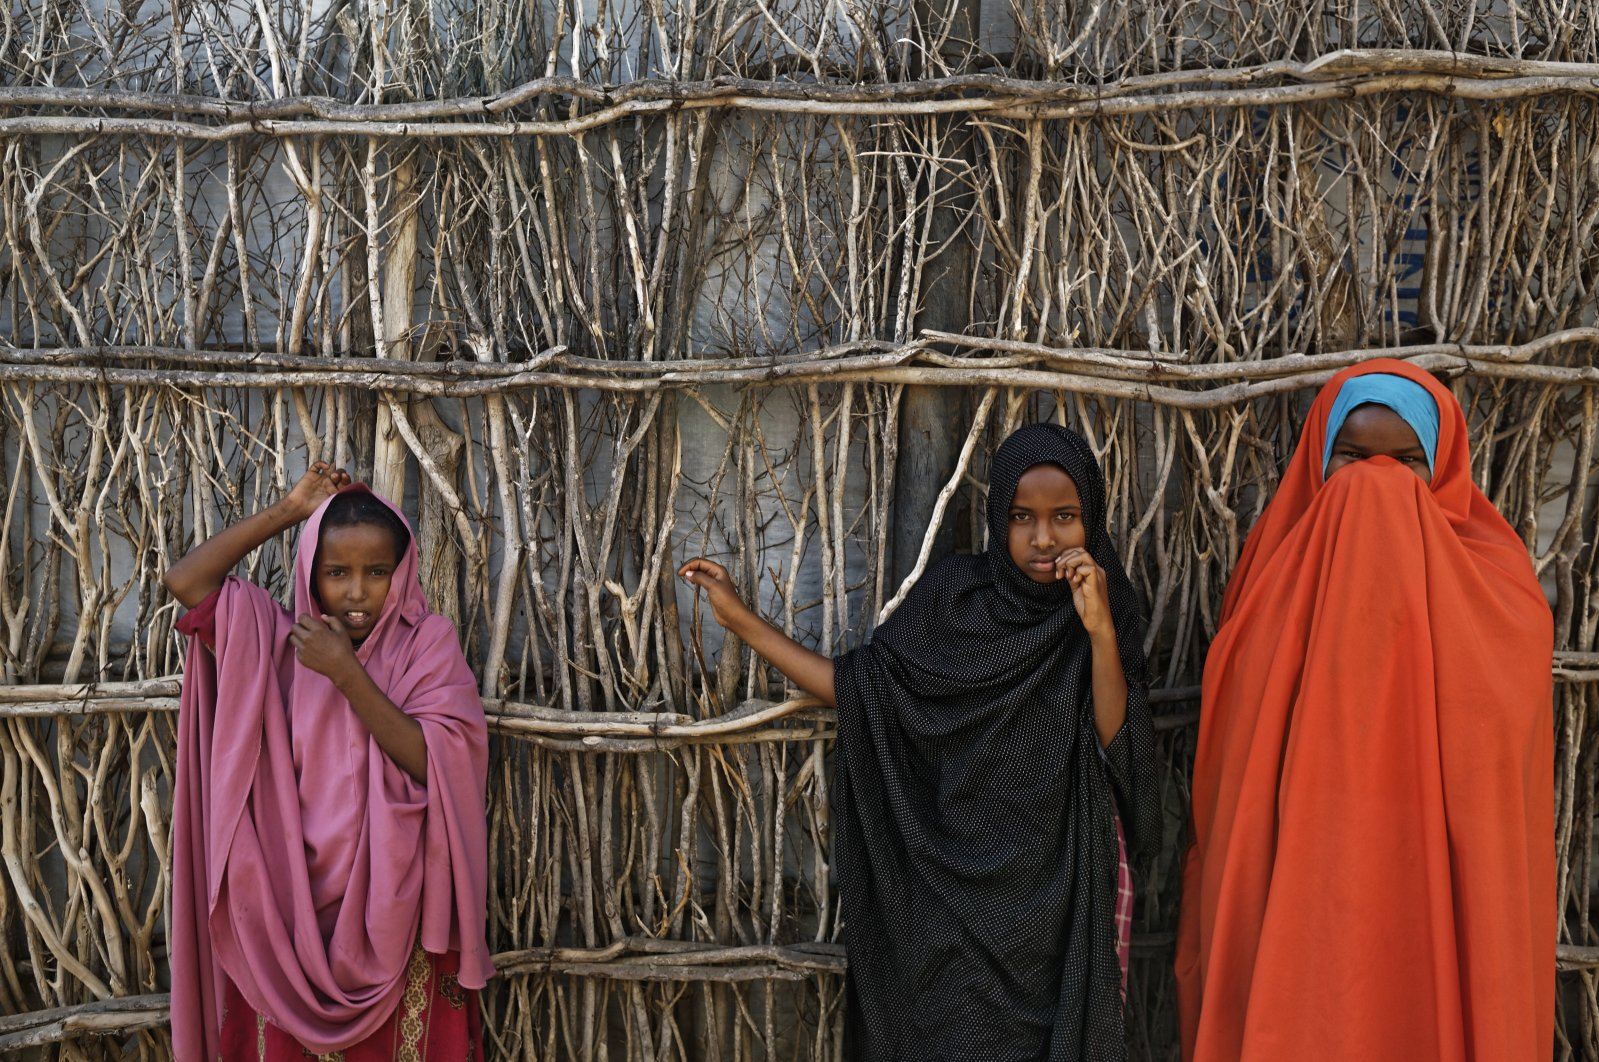 Somali refugee girls stand by the fence surrounding their hut at the Dadaab refugee camp, northern Kenya, Dec. 19, 2017. (AP Photo)